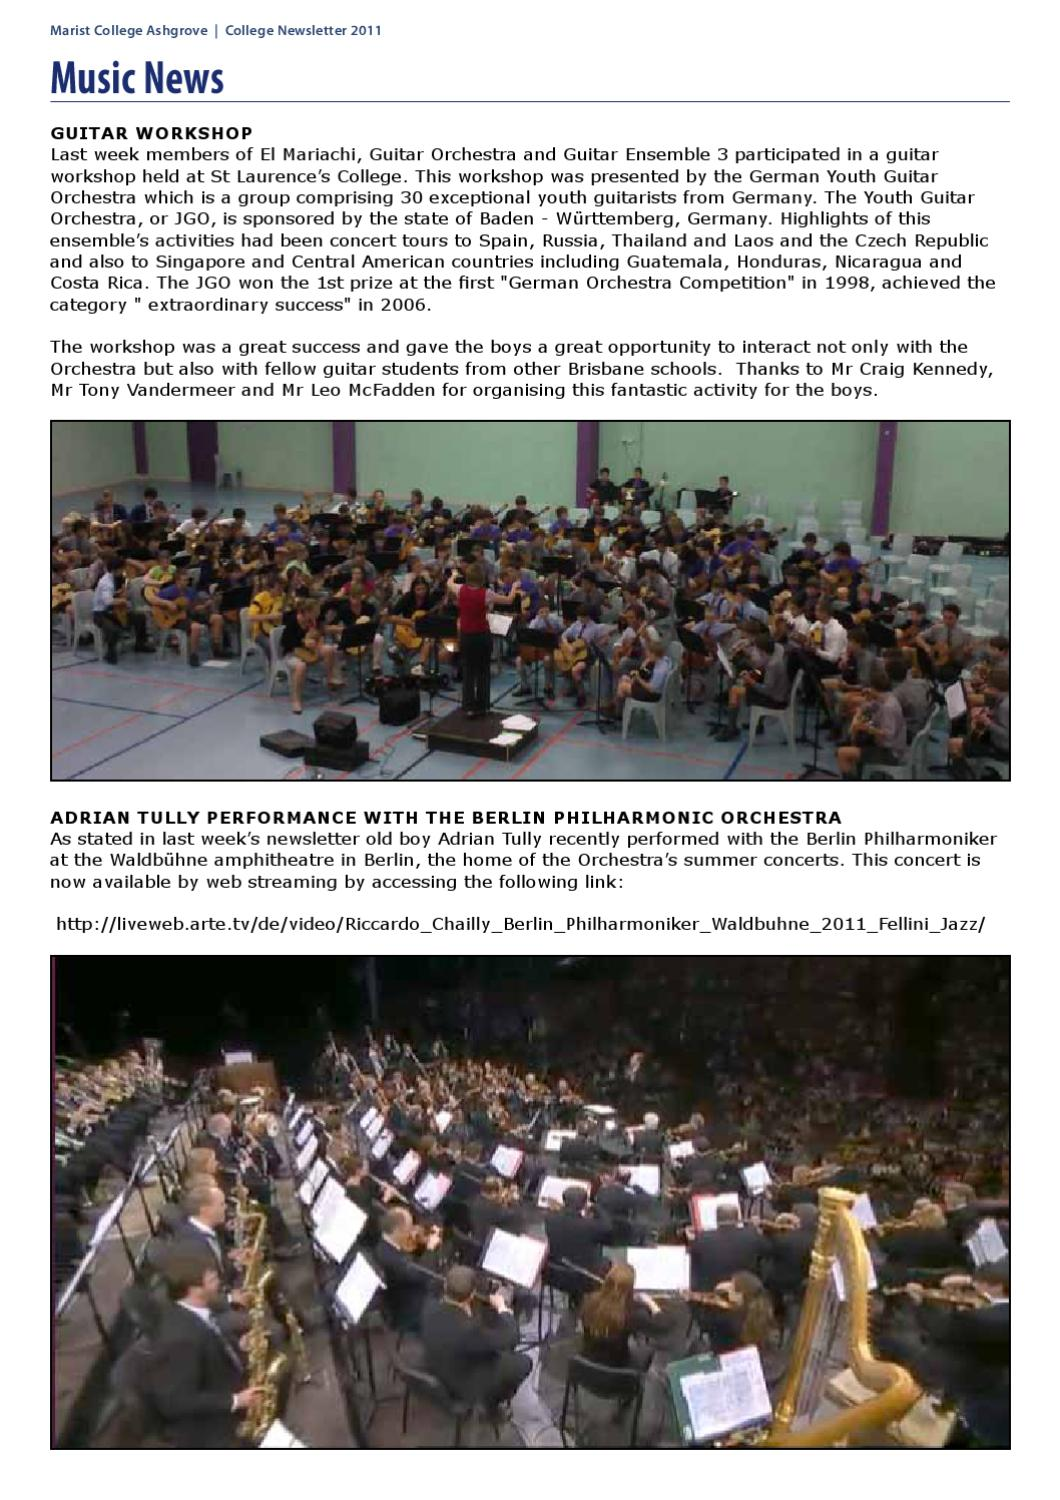 Arte Tv Newsletter Marist College Ashgrove Newsletter By Marist College Ashgrove Issuu